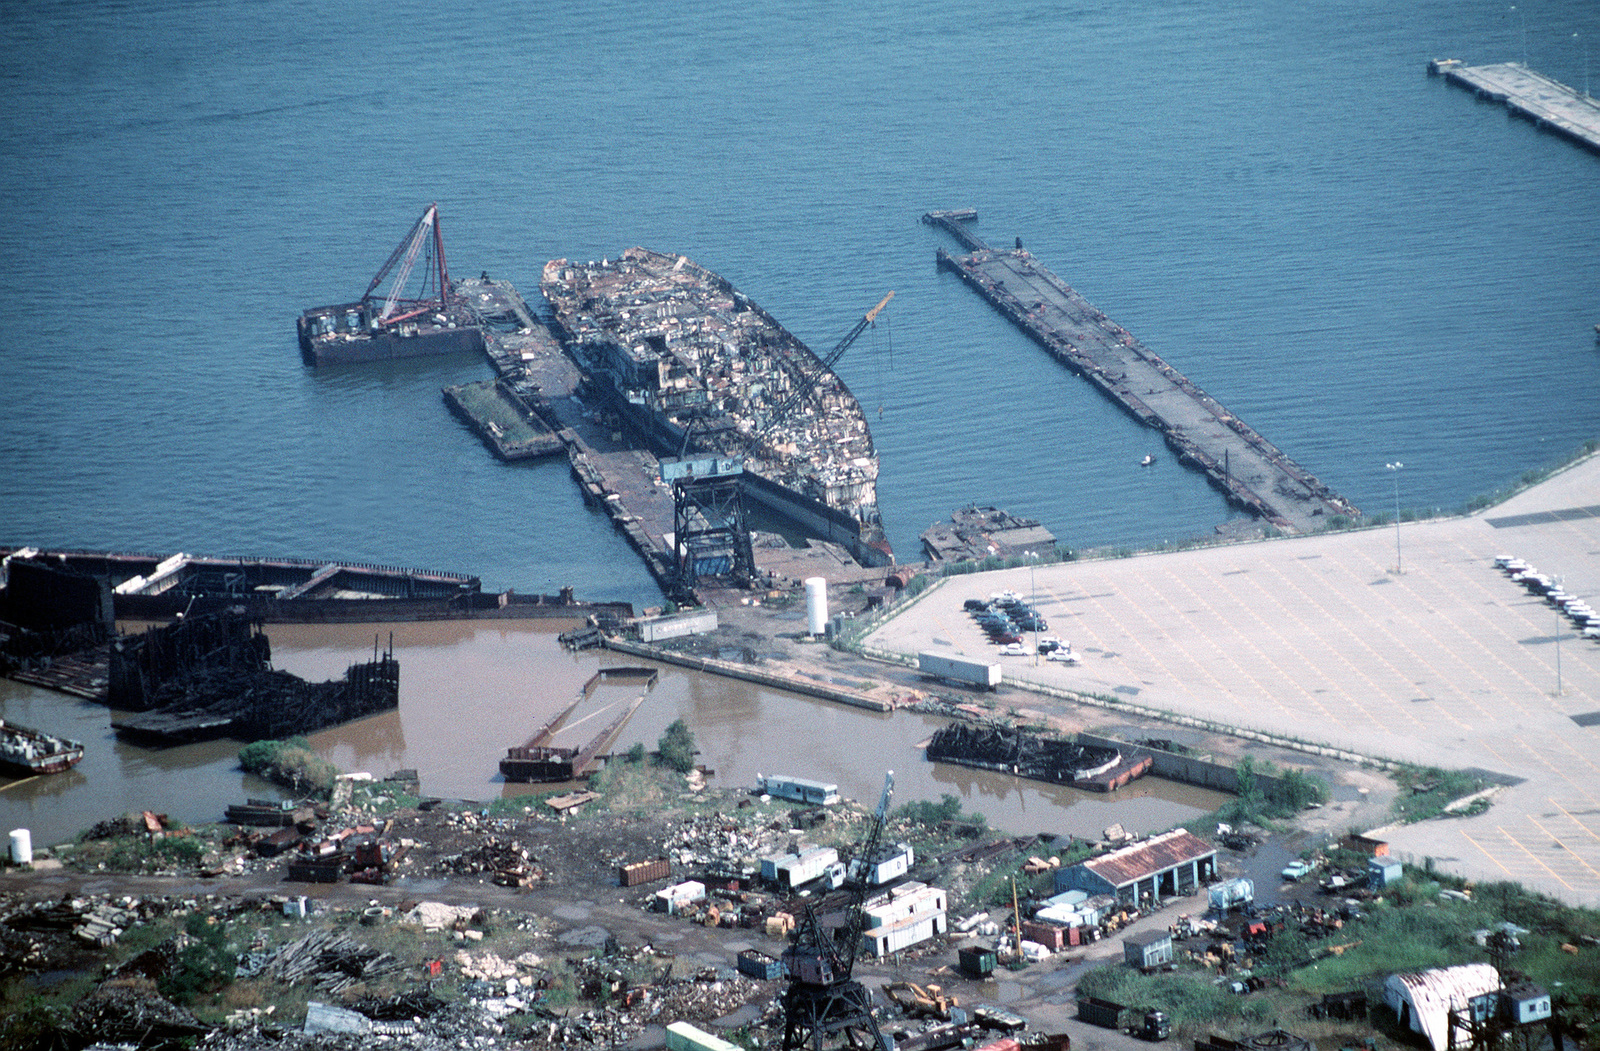 Aerial starboard bow view of the aircraft carrier CORAL SEA (CV 43) in the late stages of being scrapped out at the Fairfield Terminal of the new Patapsco Marine Salvage Company. The PMS Co. took over operations from the bankrupt Seawitch Salvage Company